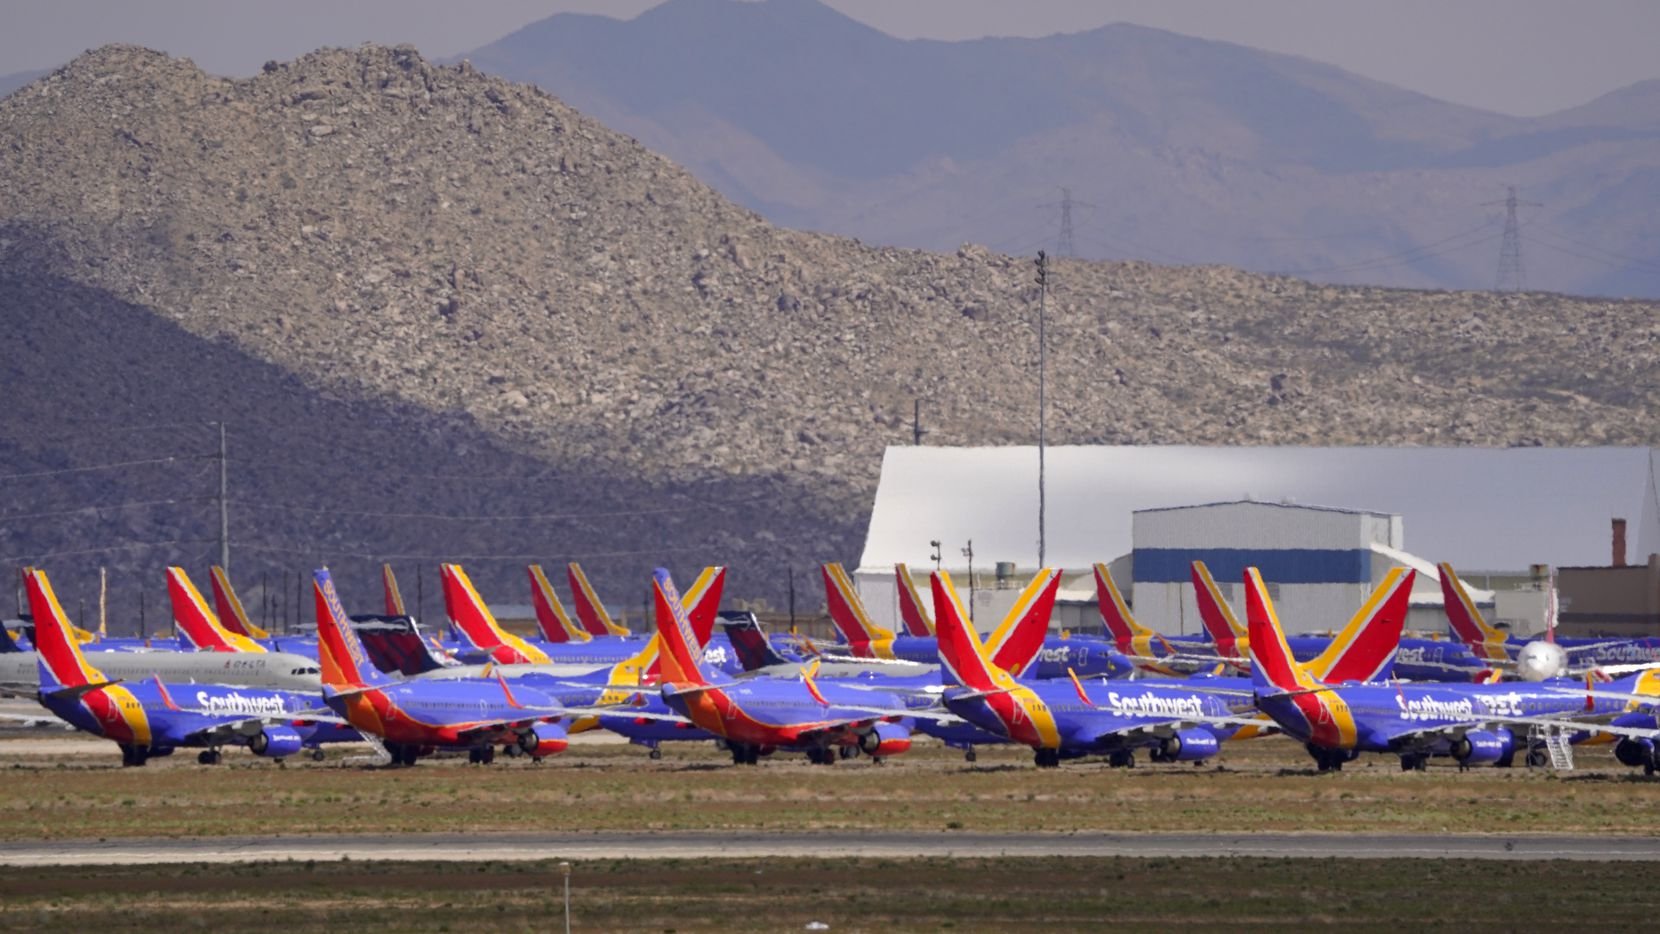 Passenger and cargo aircraft are seen stored at Southern California Logistics Airport, Wednesday, March 25, 2020, in Victorville, Calif.